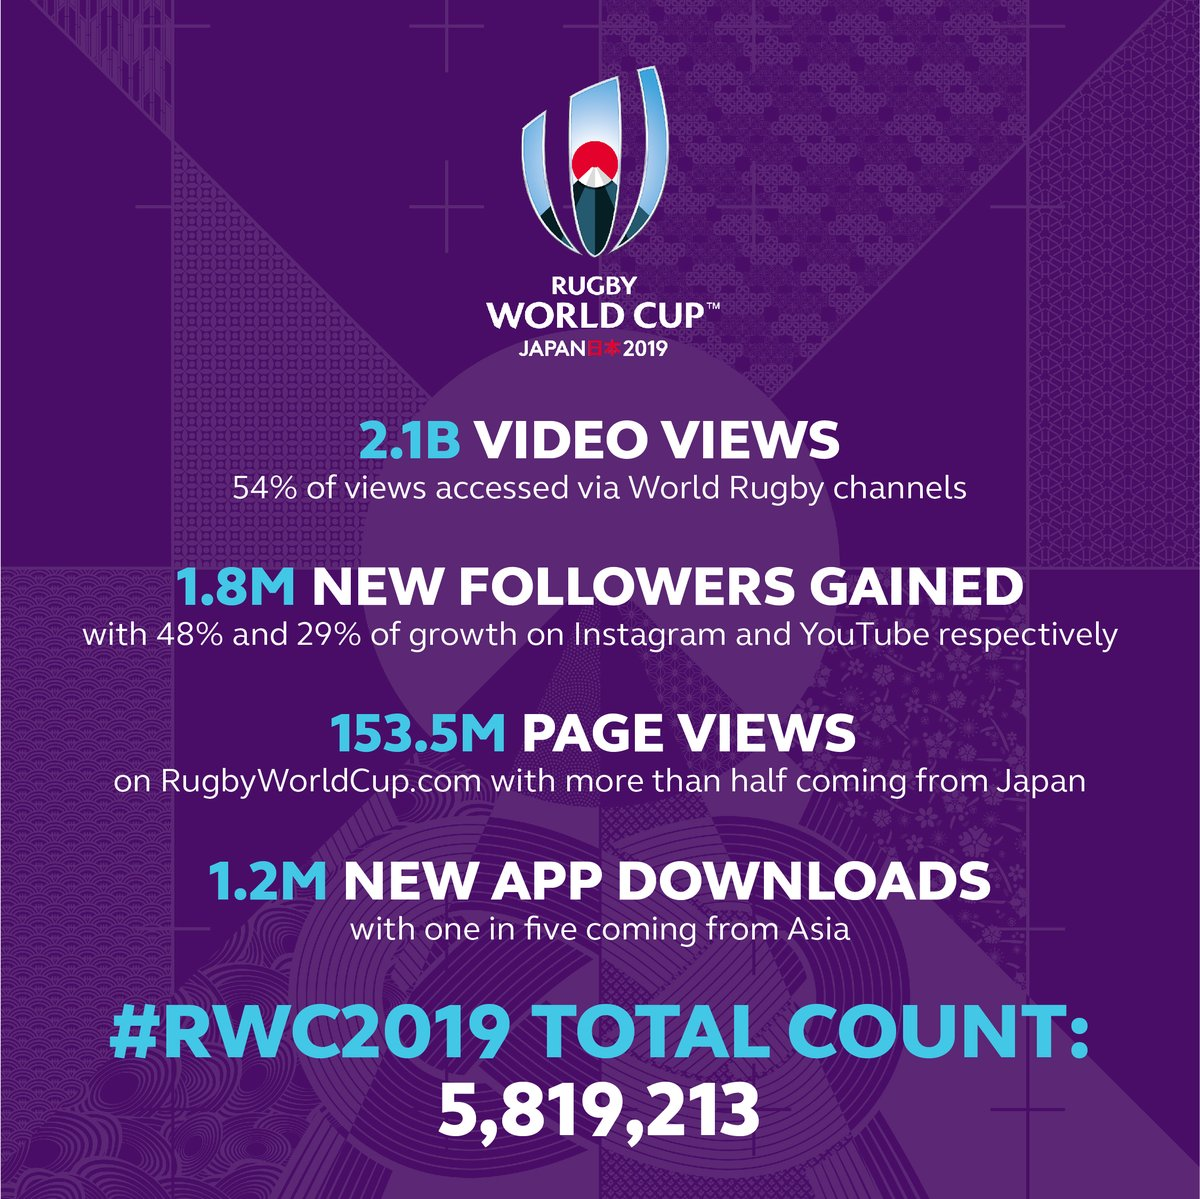 Fun focus sees #RWC2019 social and digital content break new ground and records. Read more: rug.by/urGChB